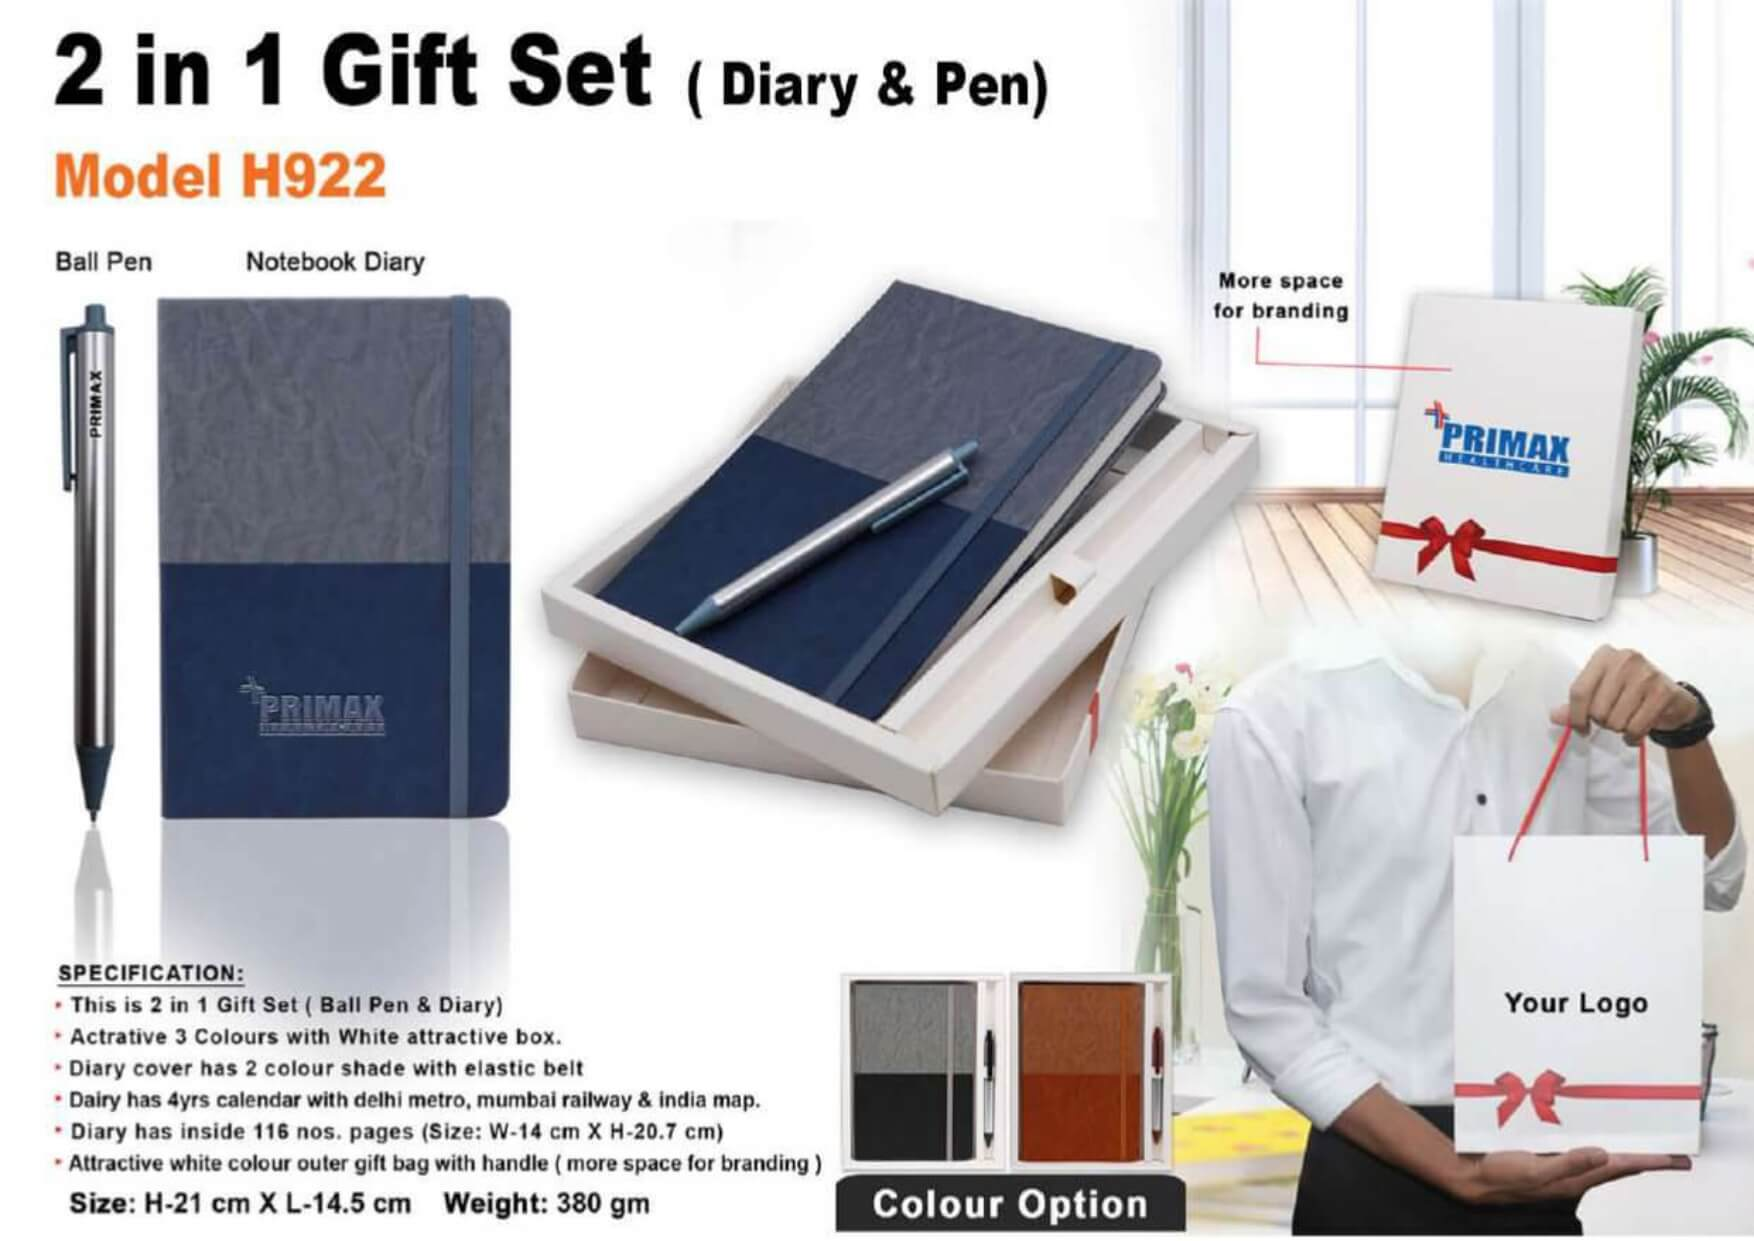 Diary and Pen 2 in 1 Gift Set 922